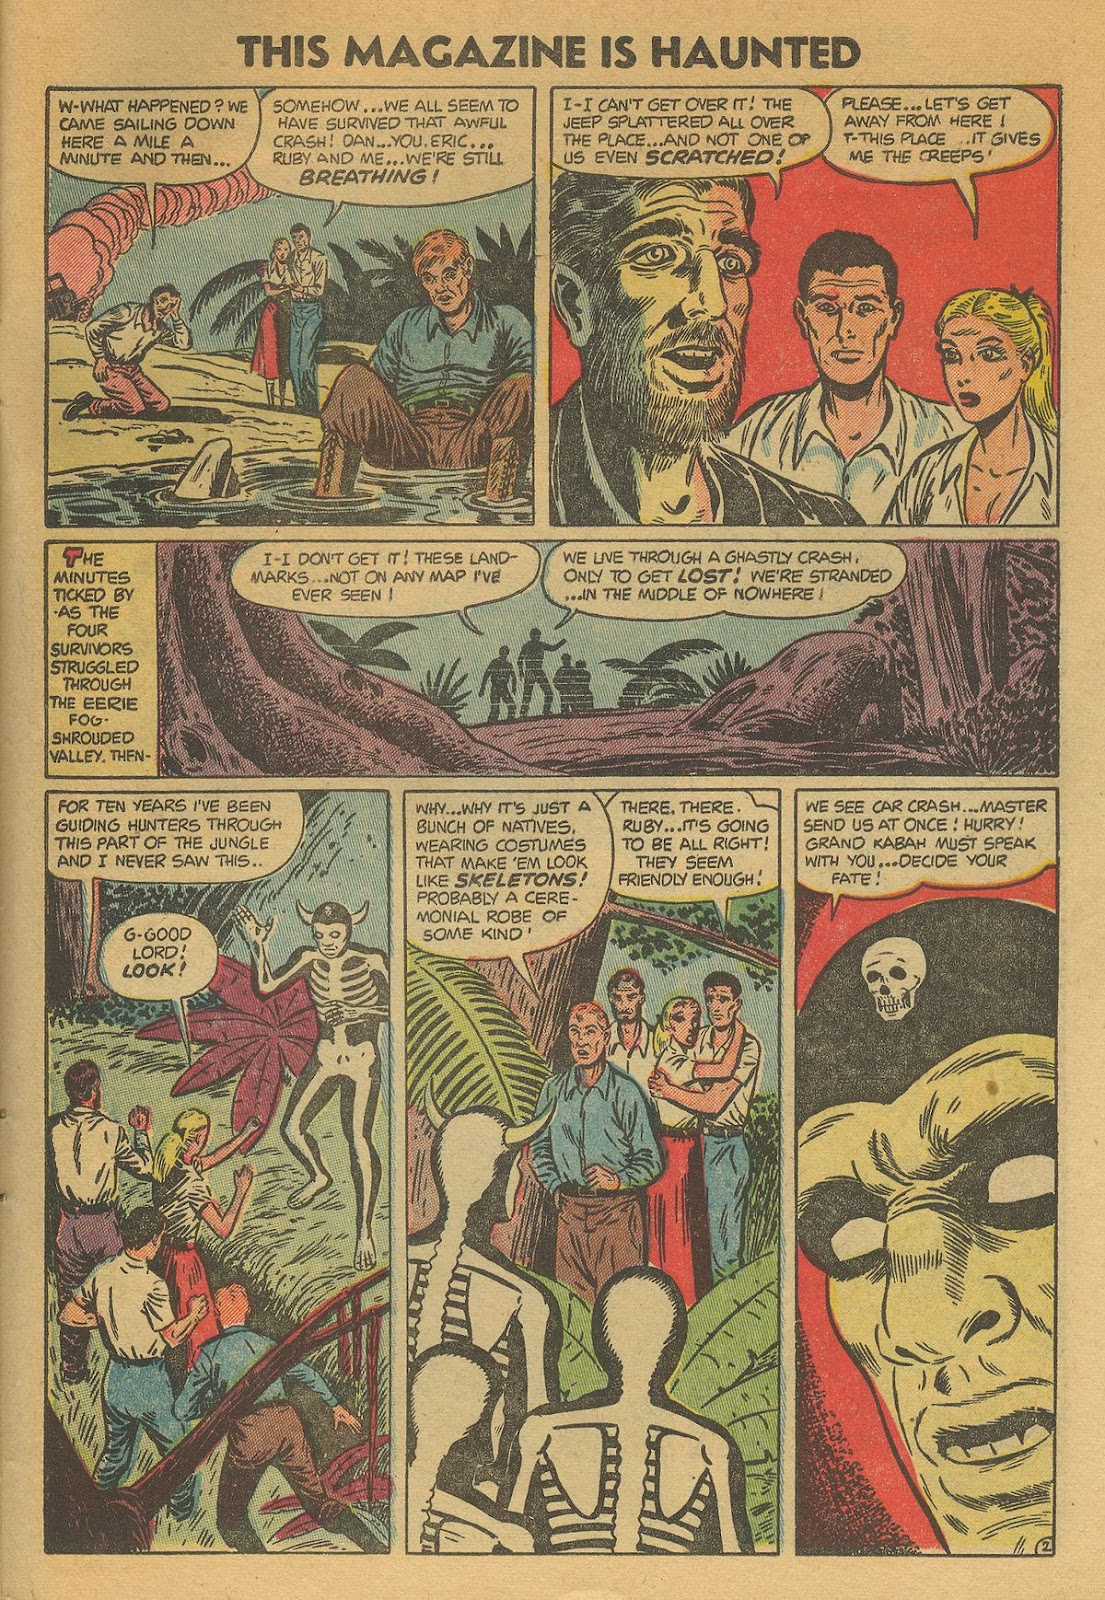 Read online This Magazine Is Haunted comic -  Issue #18 - 27